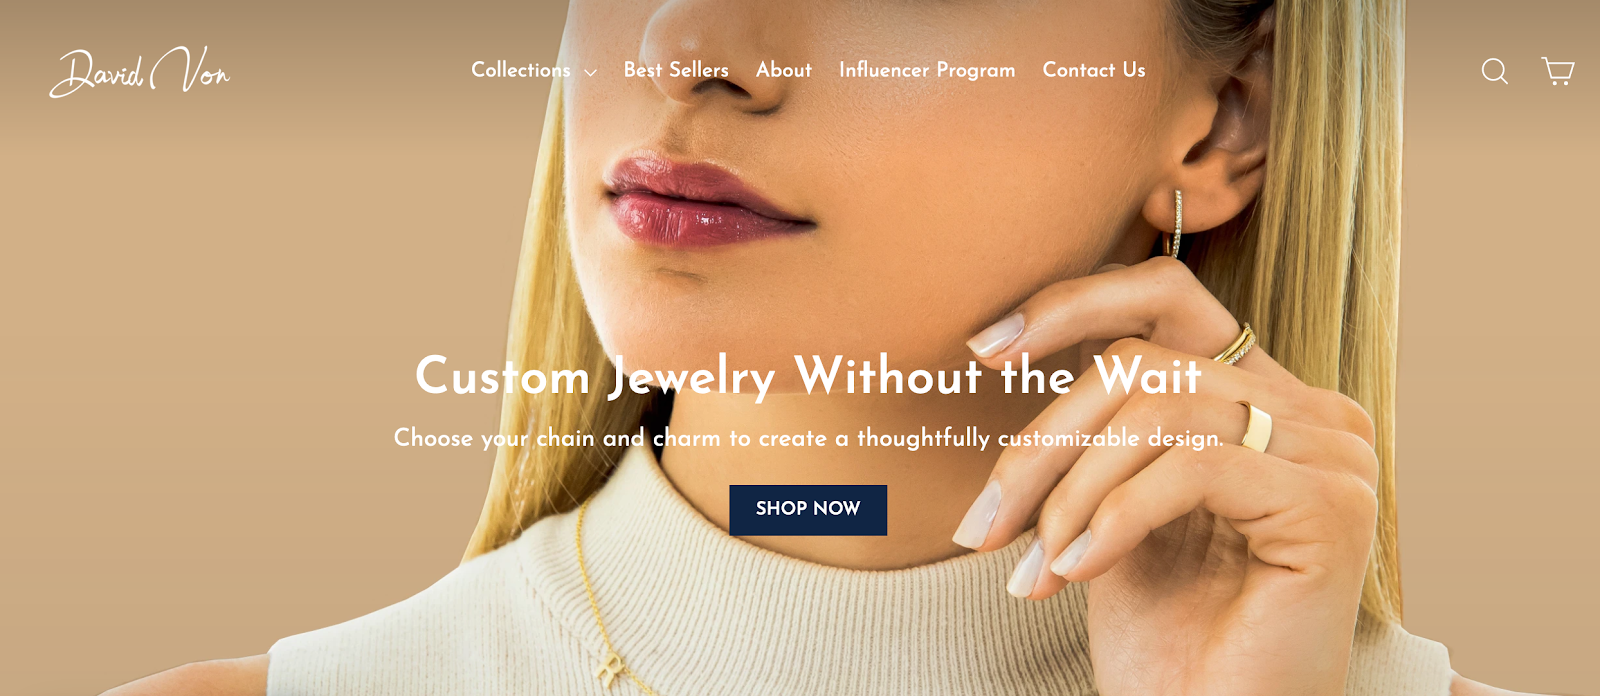 Custom Jewelry by David Von | Brands Looking for Influencers